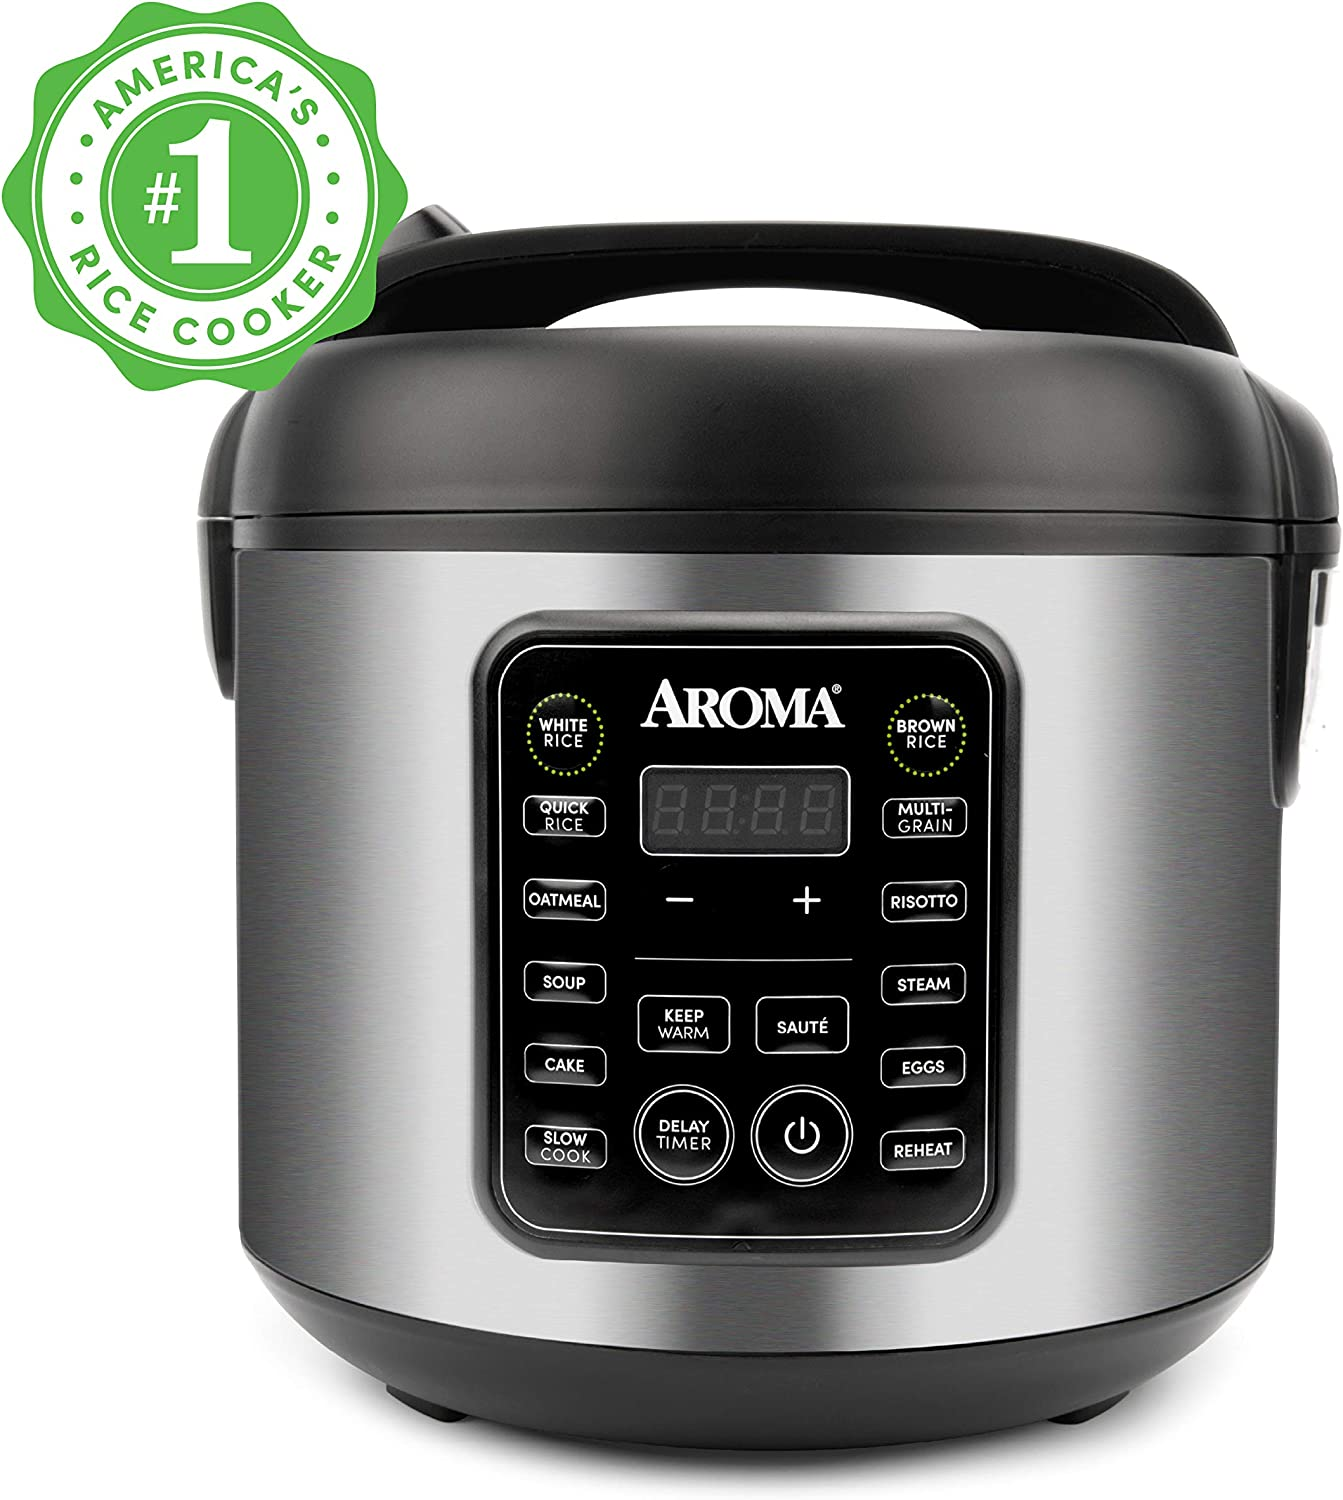 Aroma Housewares ARC-5200SB 2O2O model, Rice, Grain, Saute Pan, Slow Cooker, Steamer, Stewpot, Oatmeal, Risotto, Soup Maker, 20 cup cooked / 10 cup uncooked / 4QT, Stainless Steel